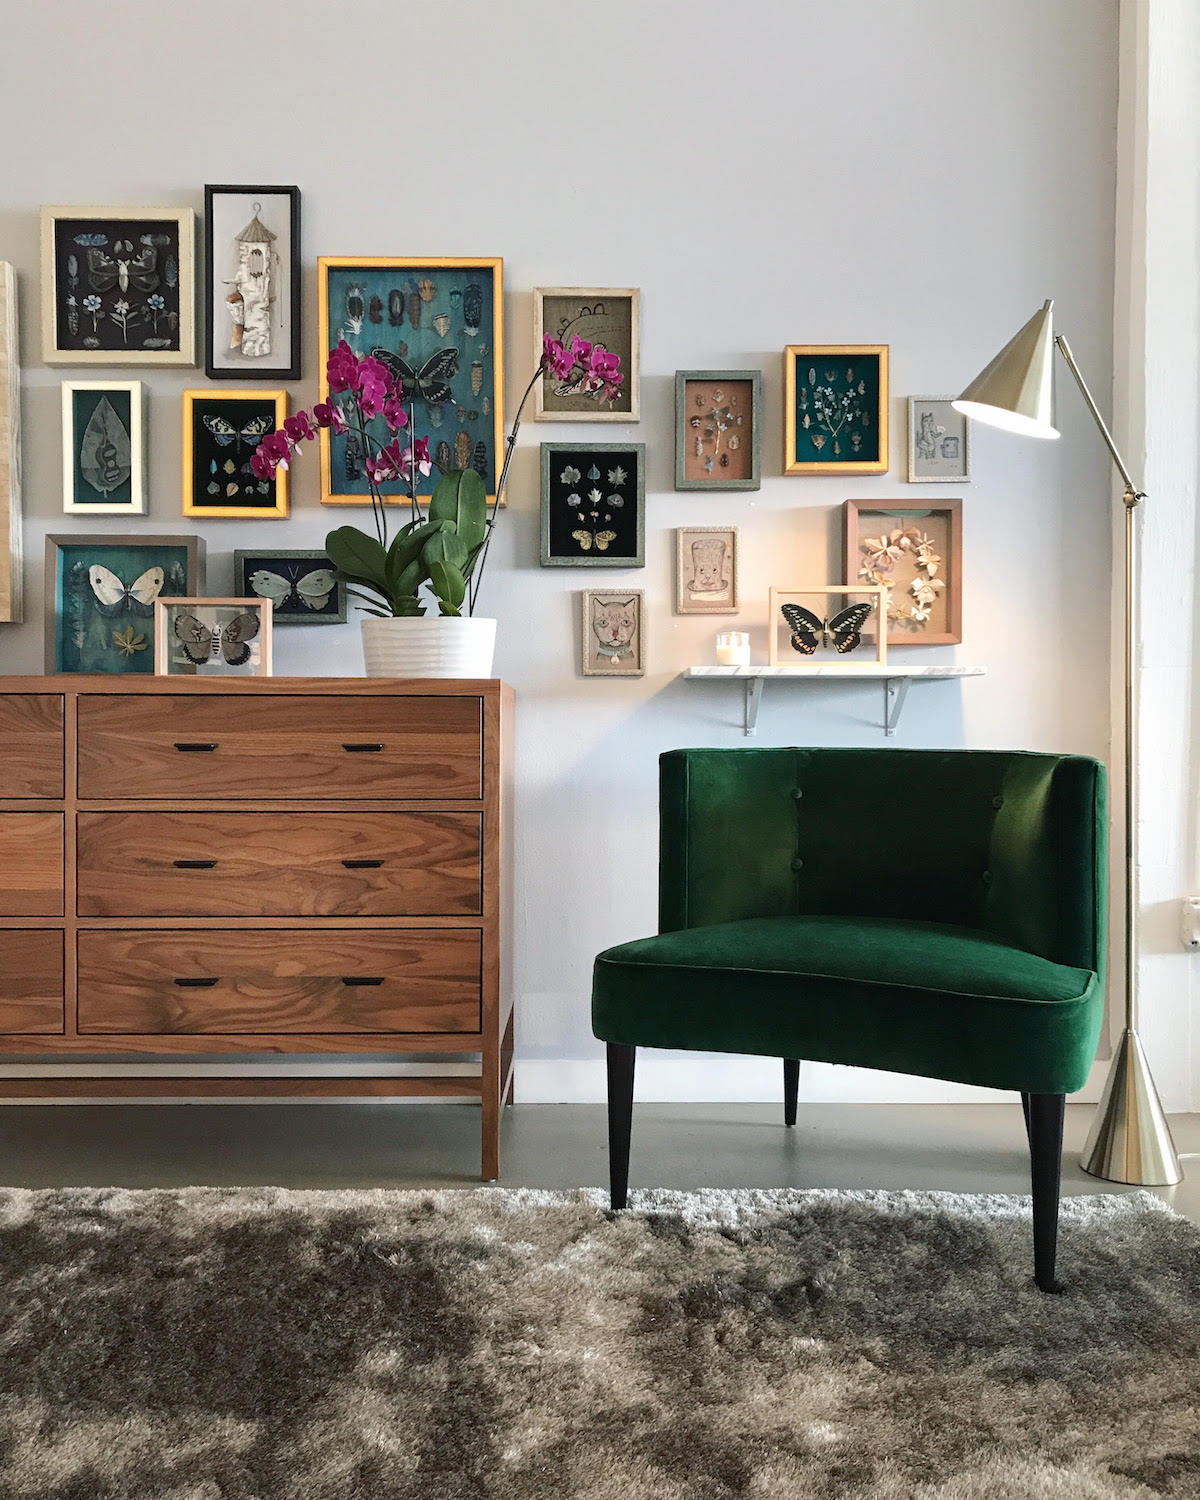 The Art of Collecting with Ann Wood for Design*Sponge